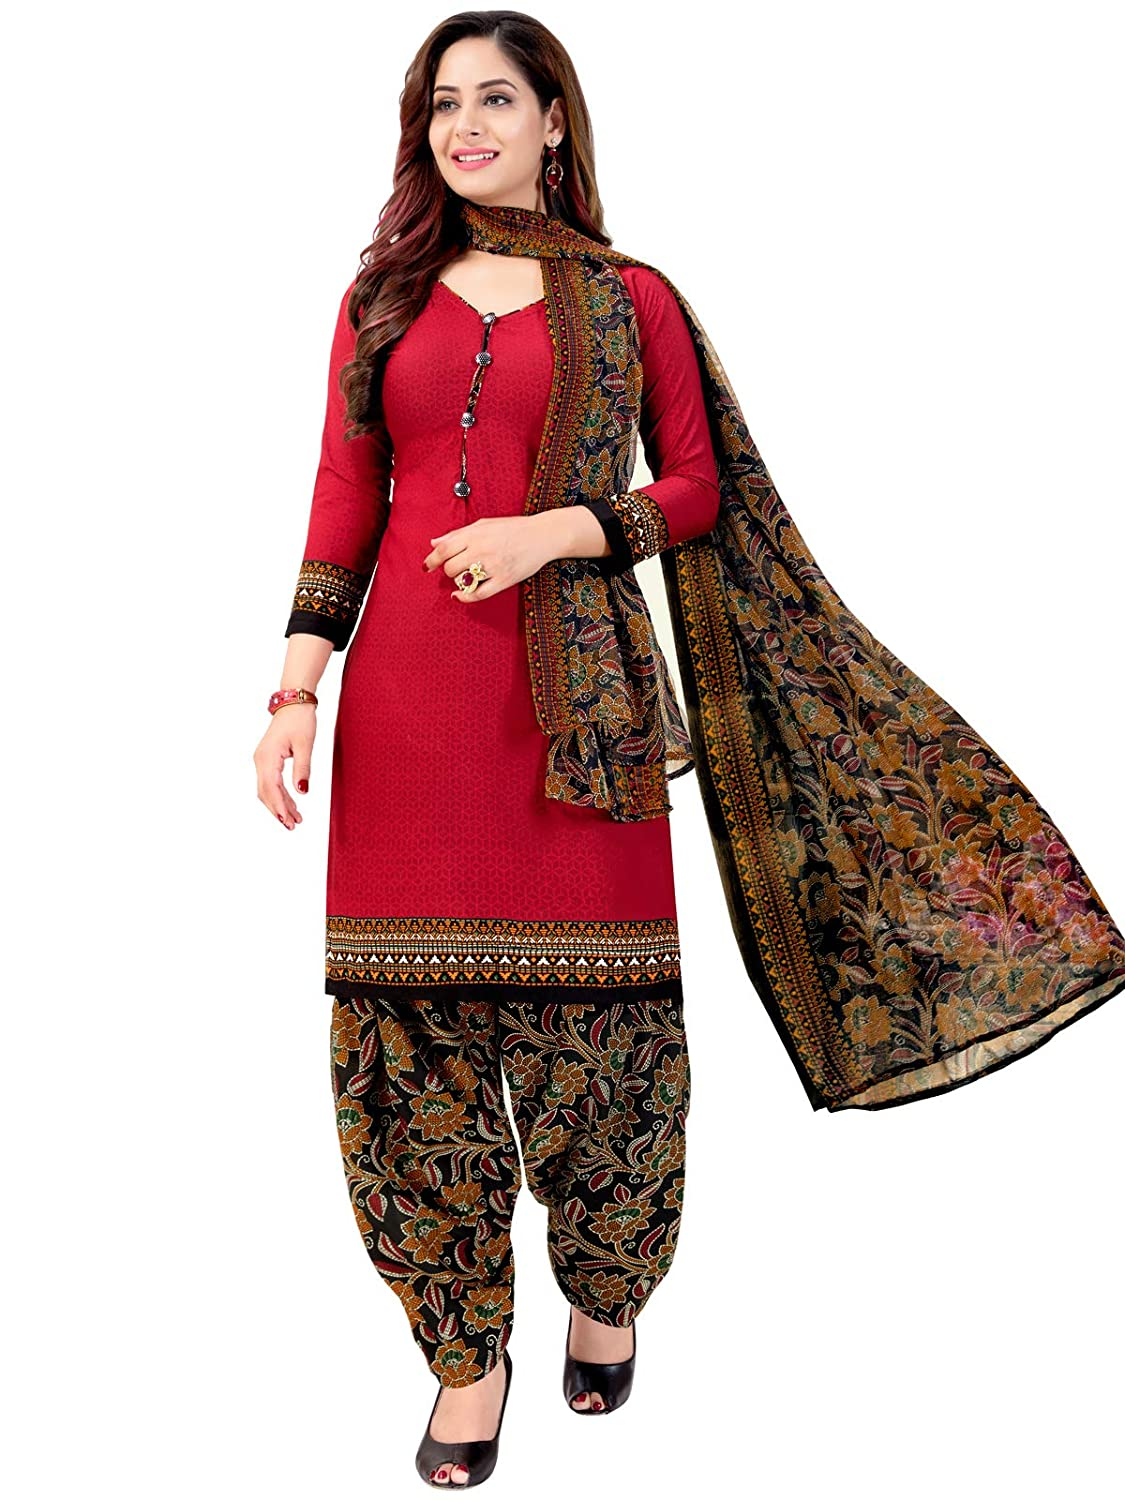 Rajnandini Women's Red Colour Cotton Floral Printed Unstitched Salwar Suit Dress Material